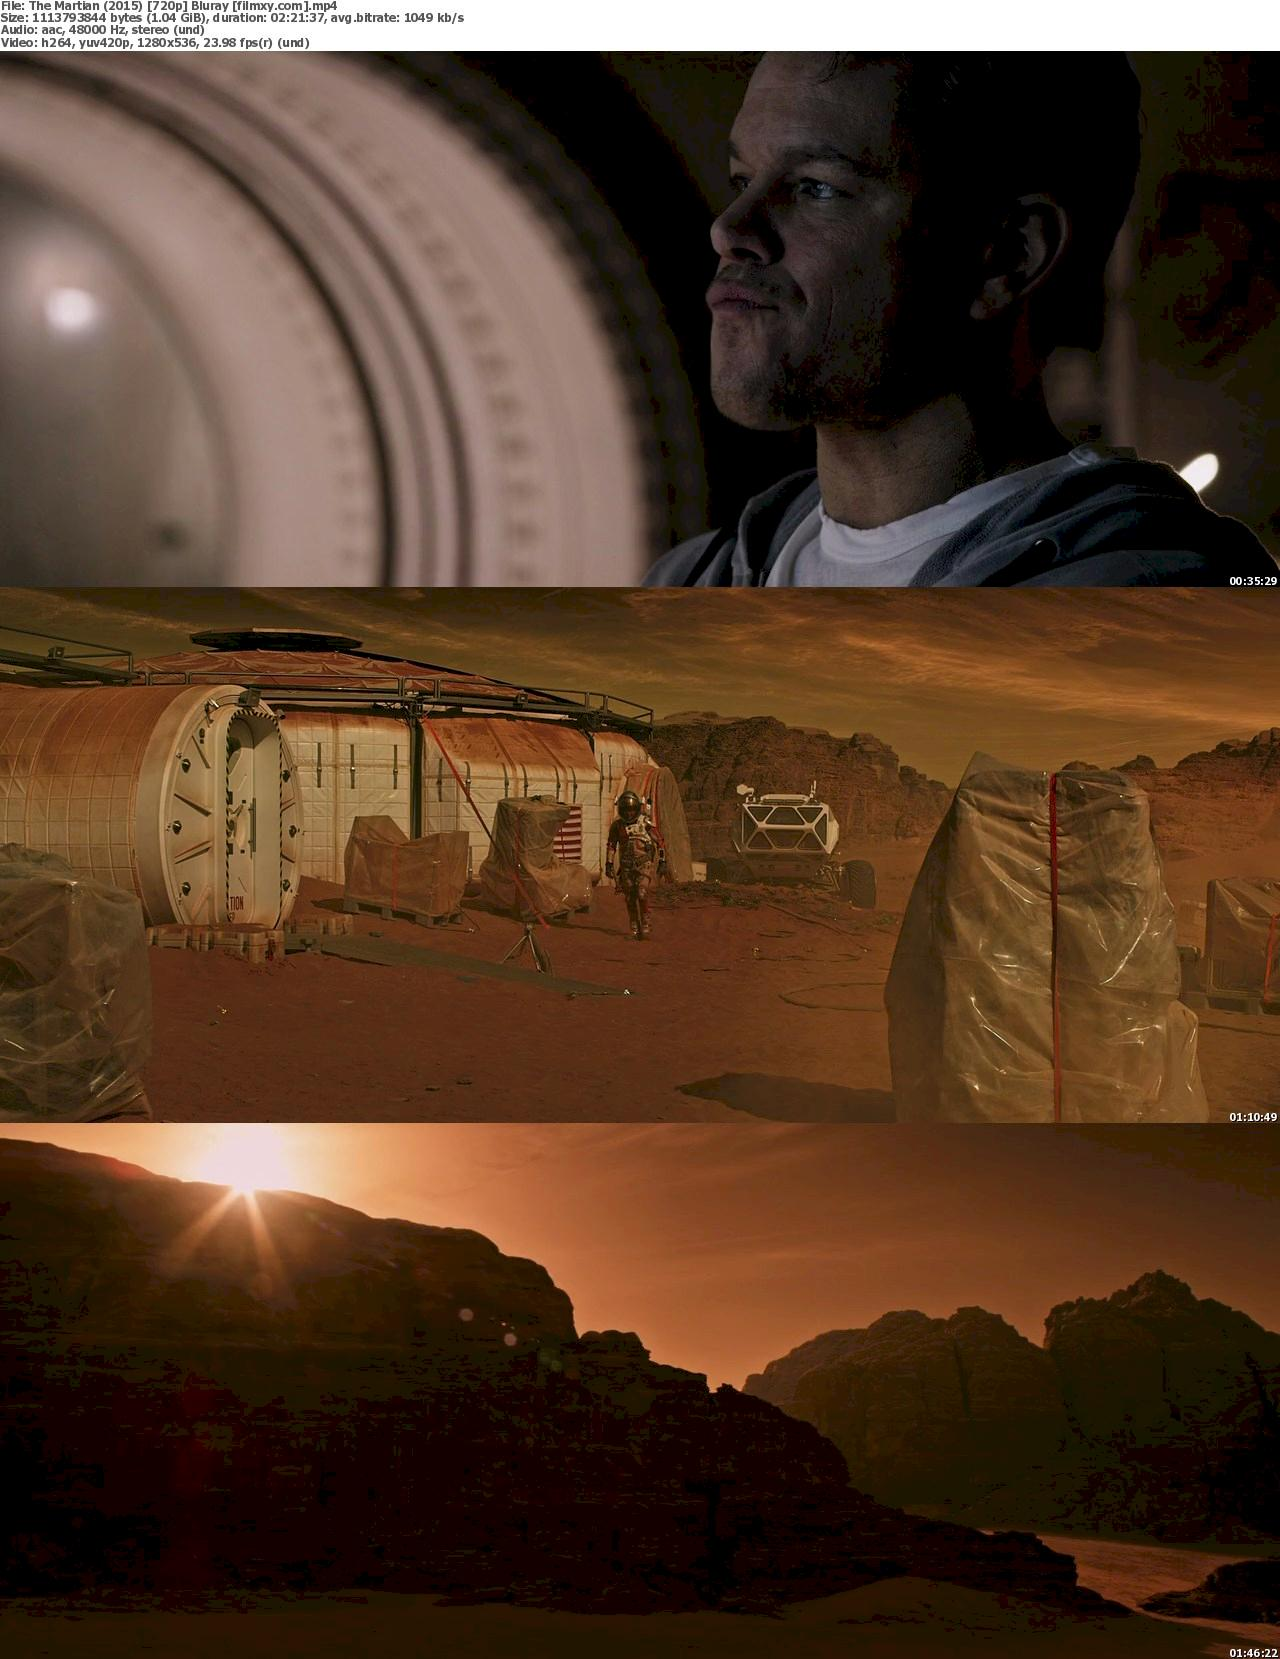 The Martian (2015) 720p & 1080p Bluray Free Download 720p Screenshot